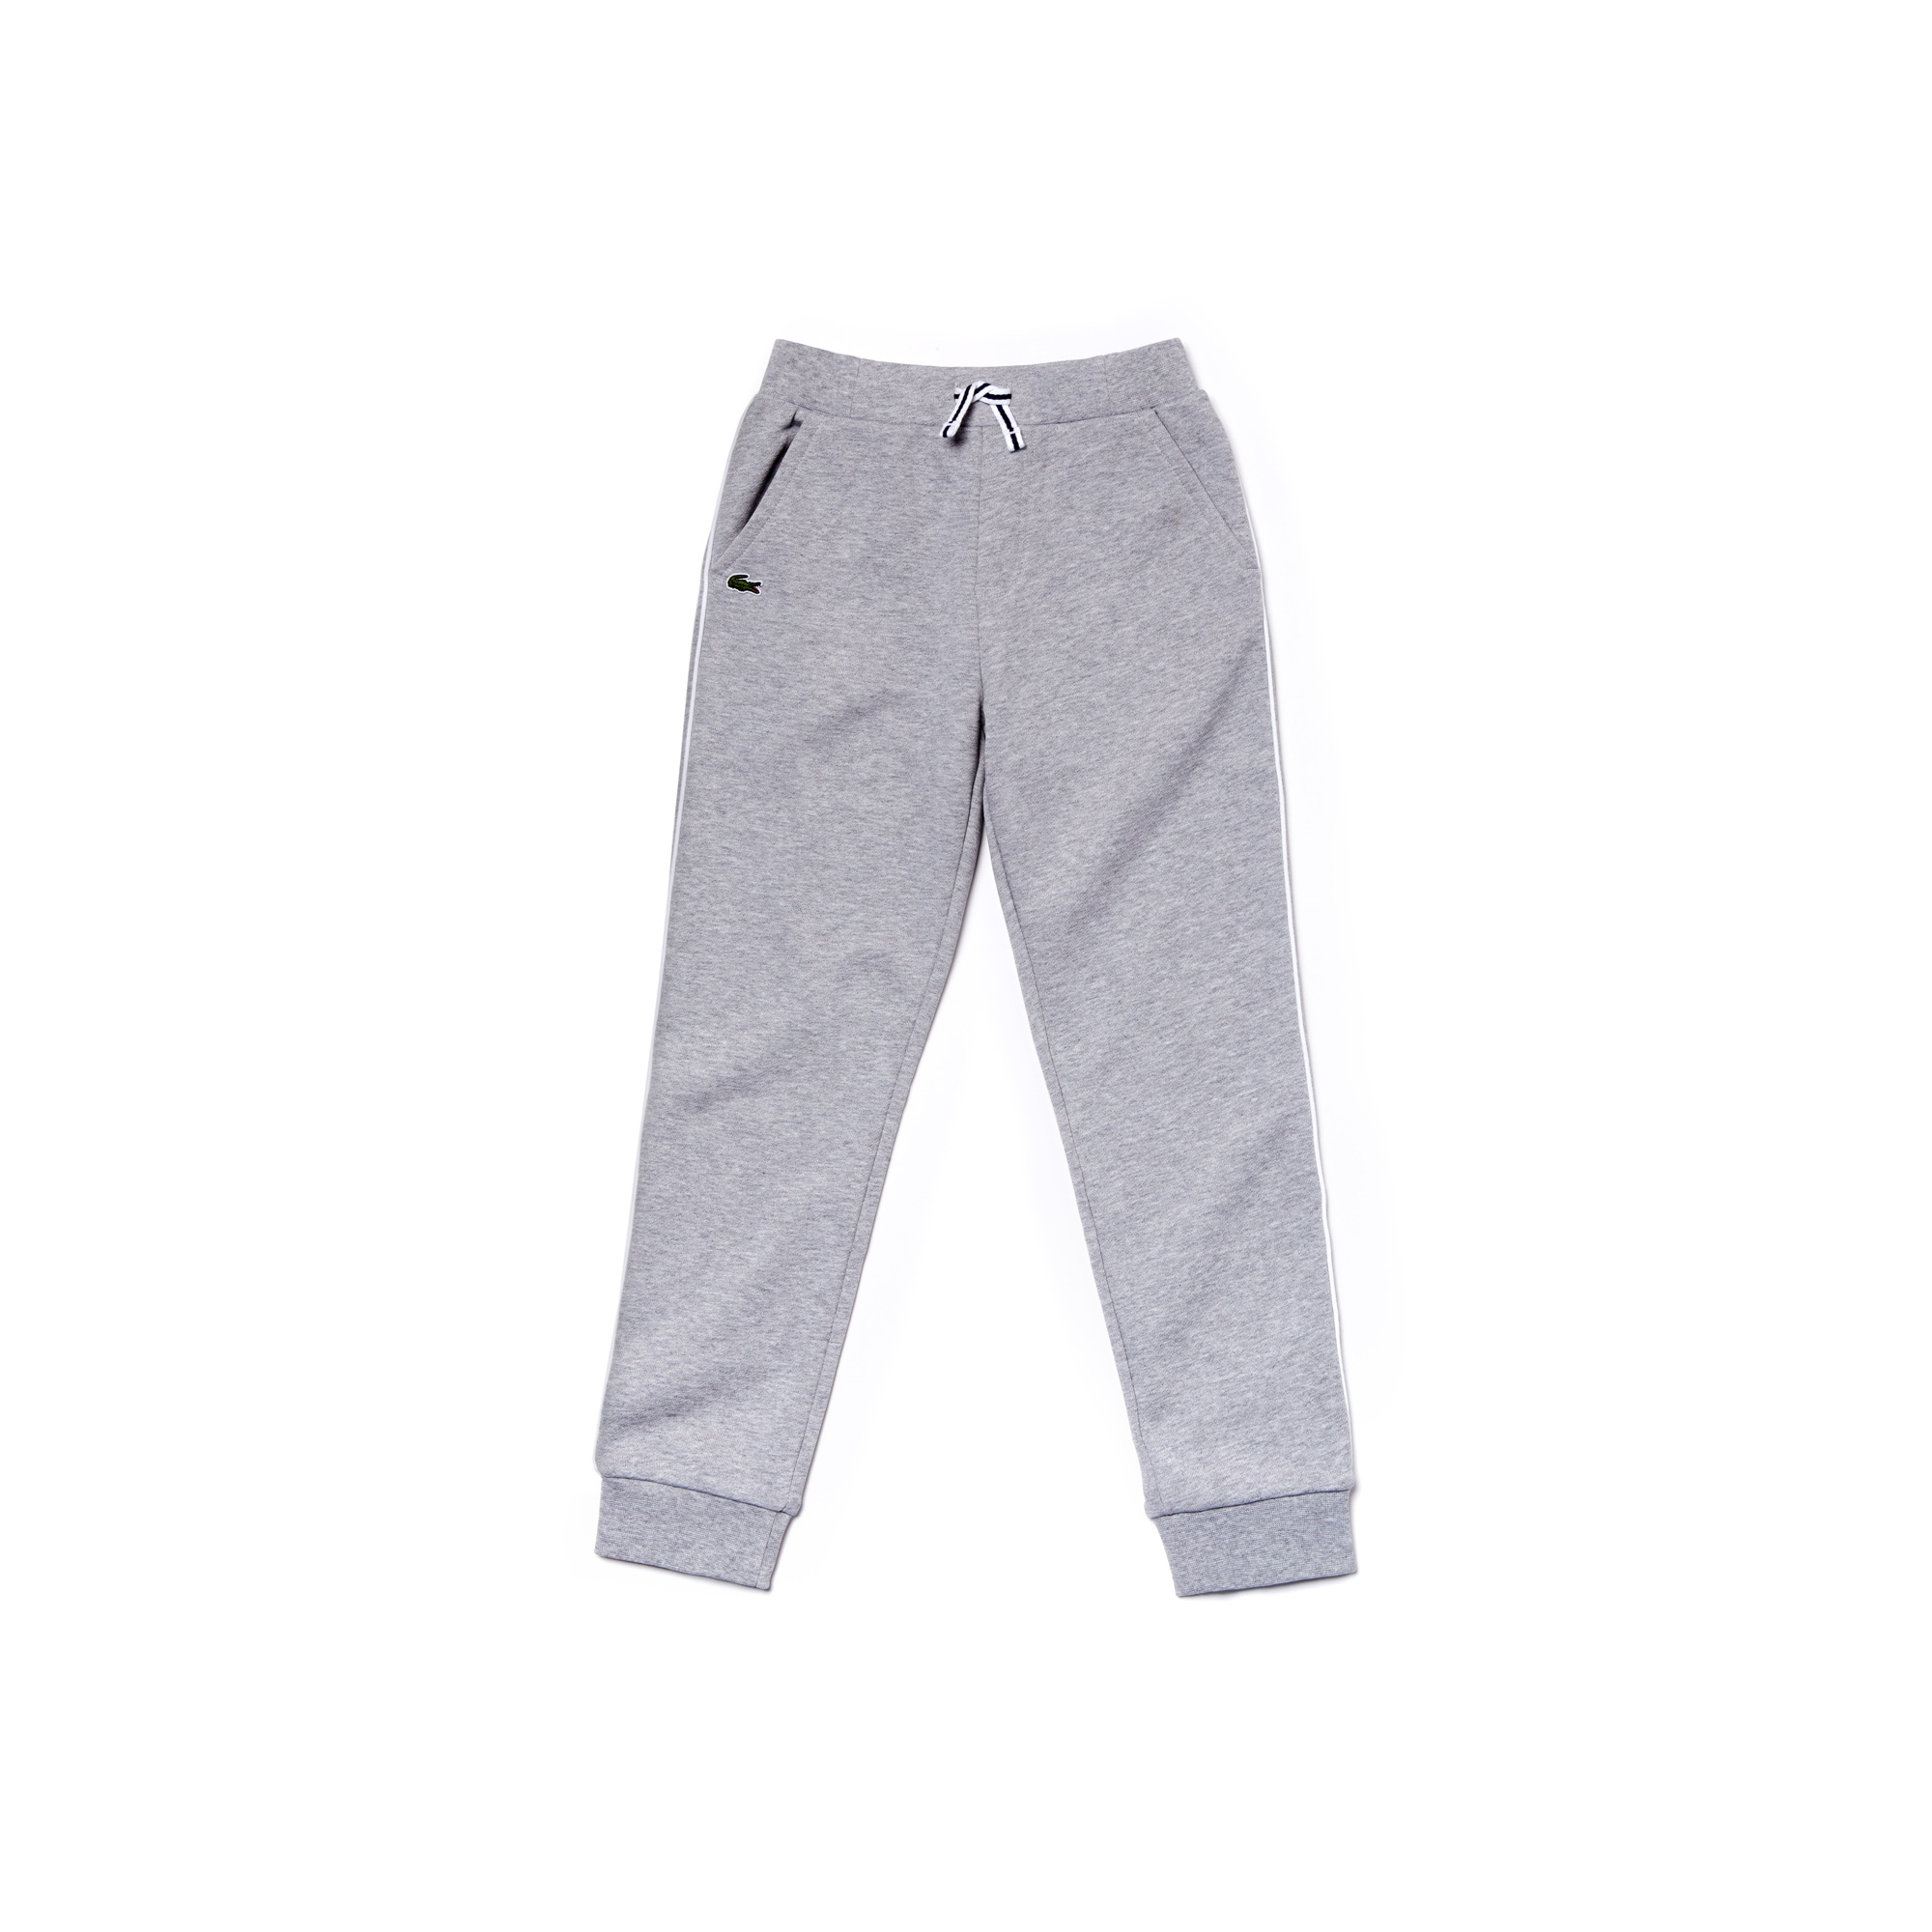 Boys' Contrast Bands Fleece Jogging Pants